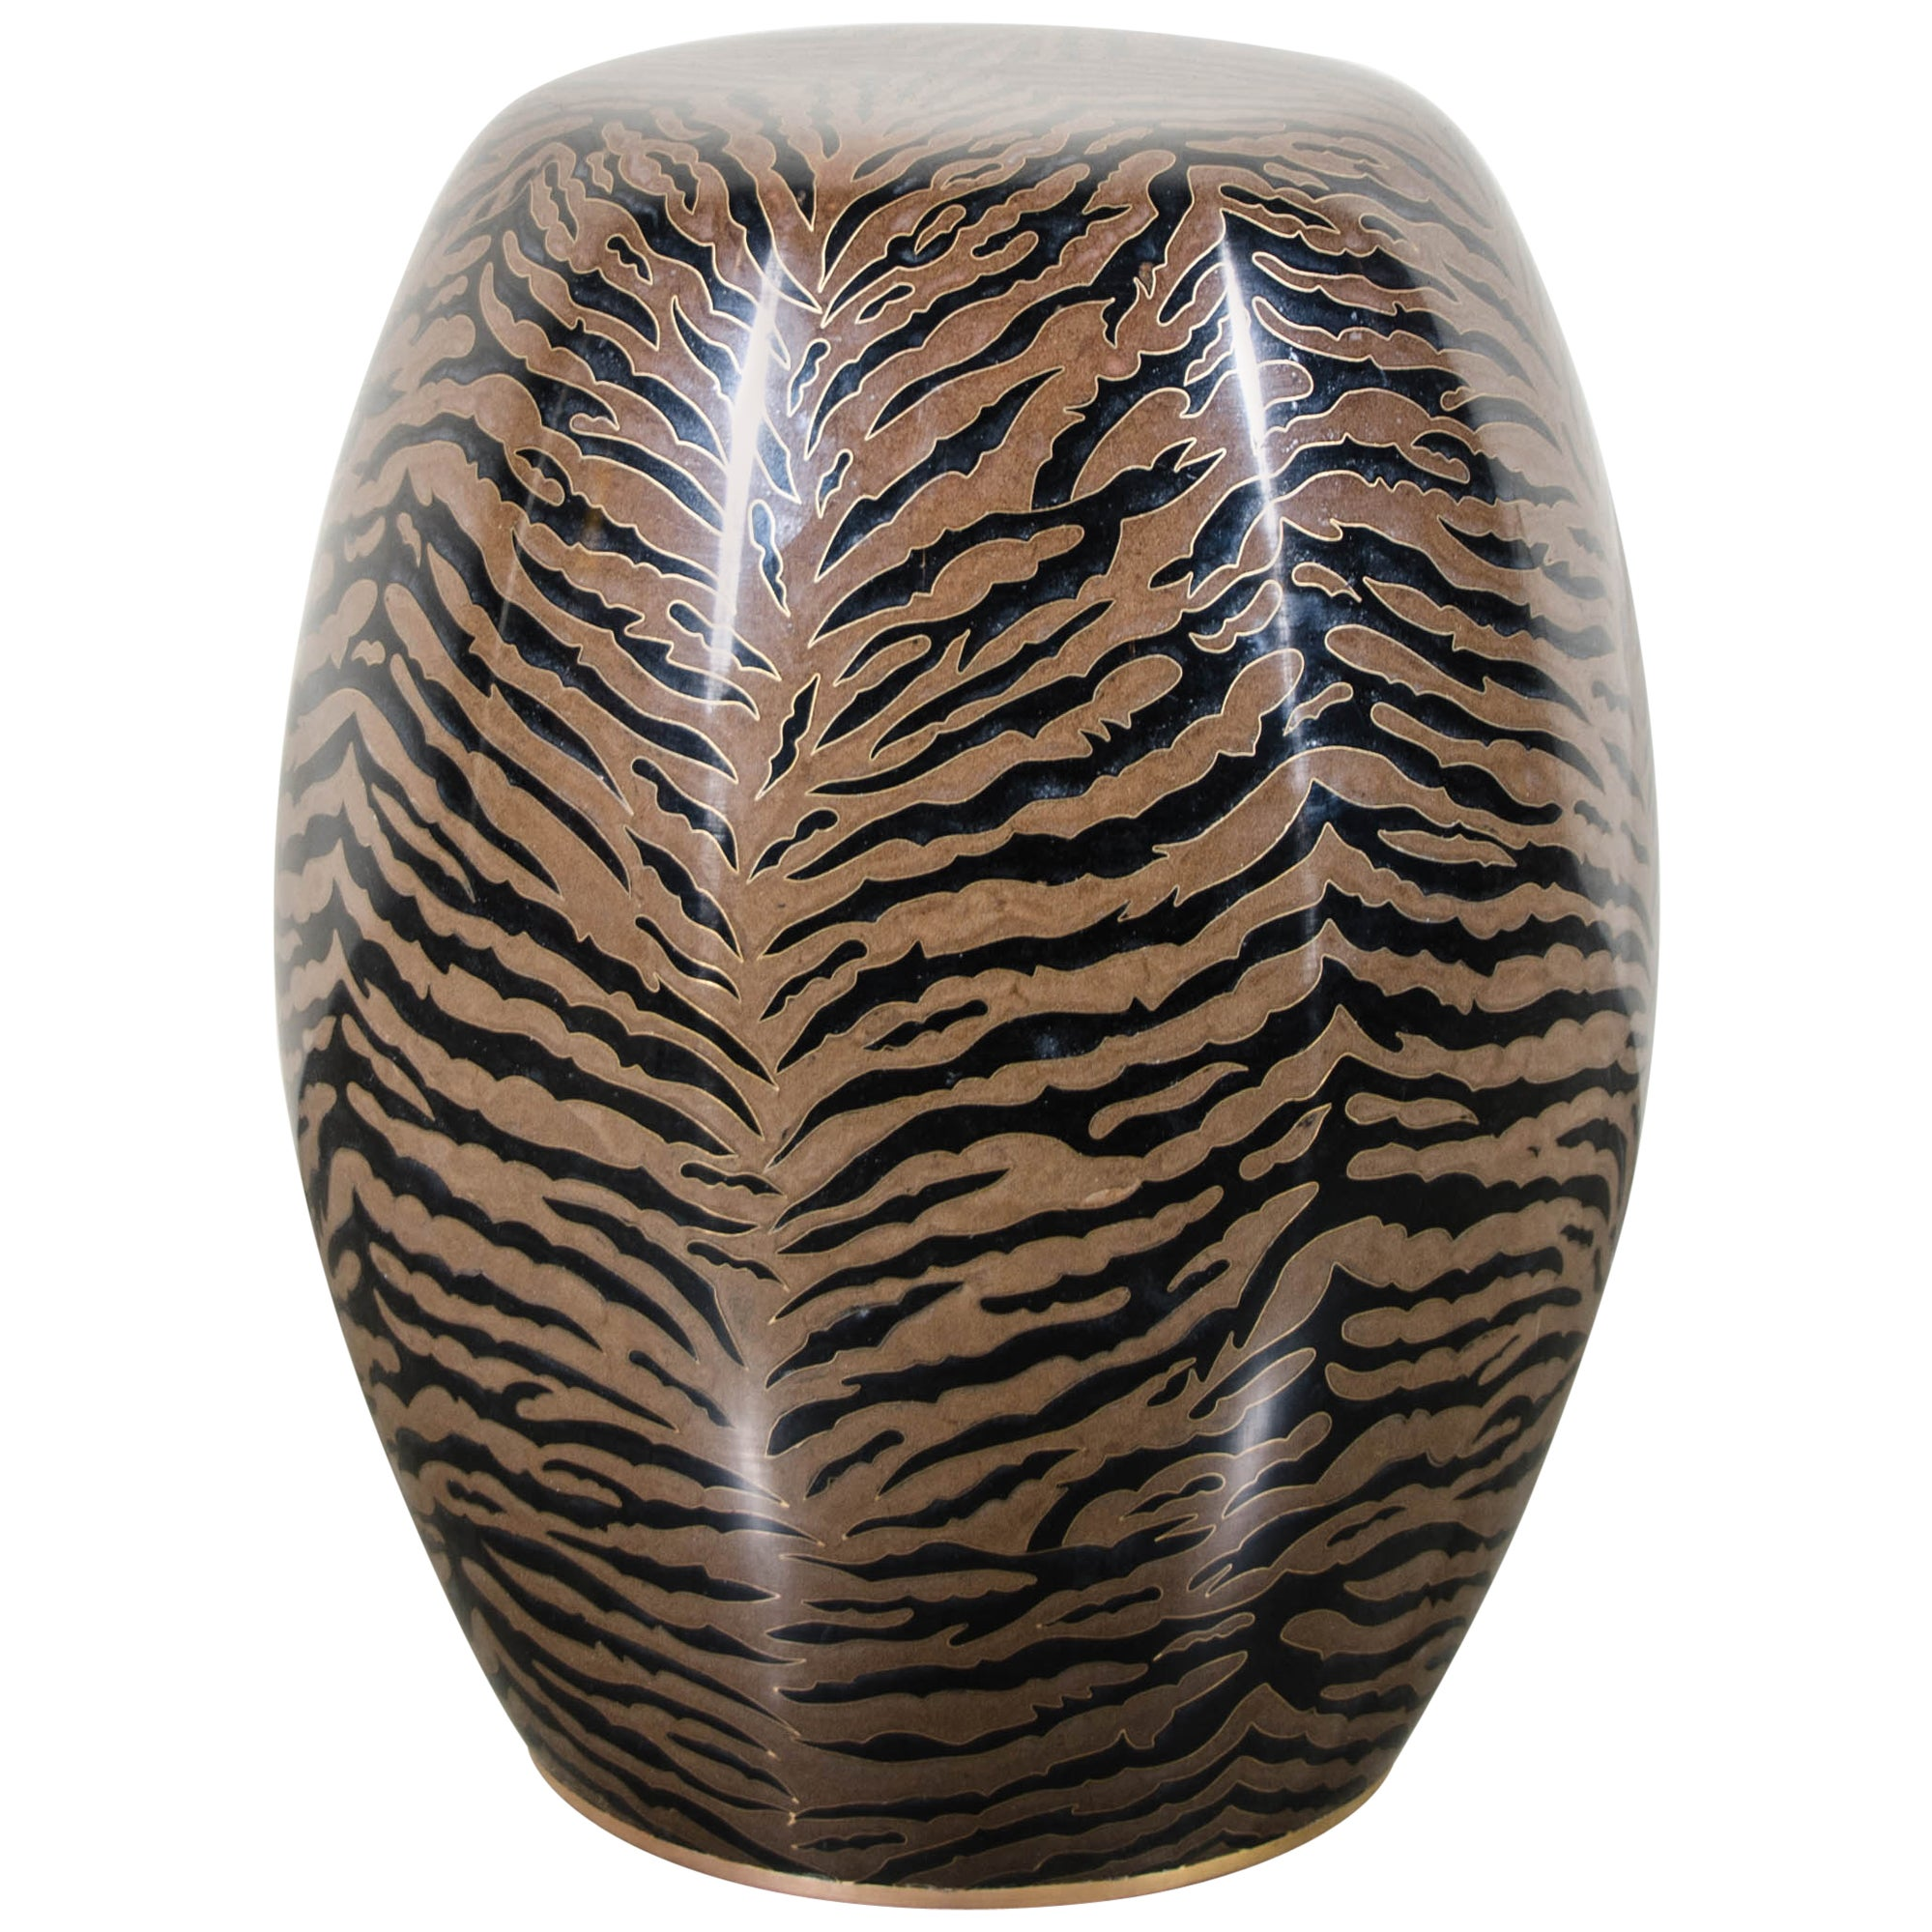 Tiger Skin Cloisonné Drumstool by Robert Kuo, Limited Edition